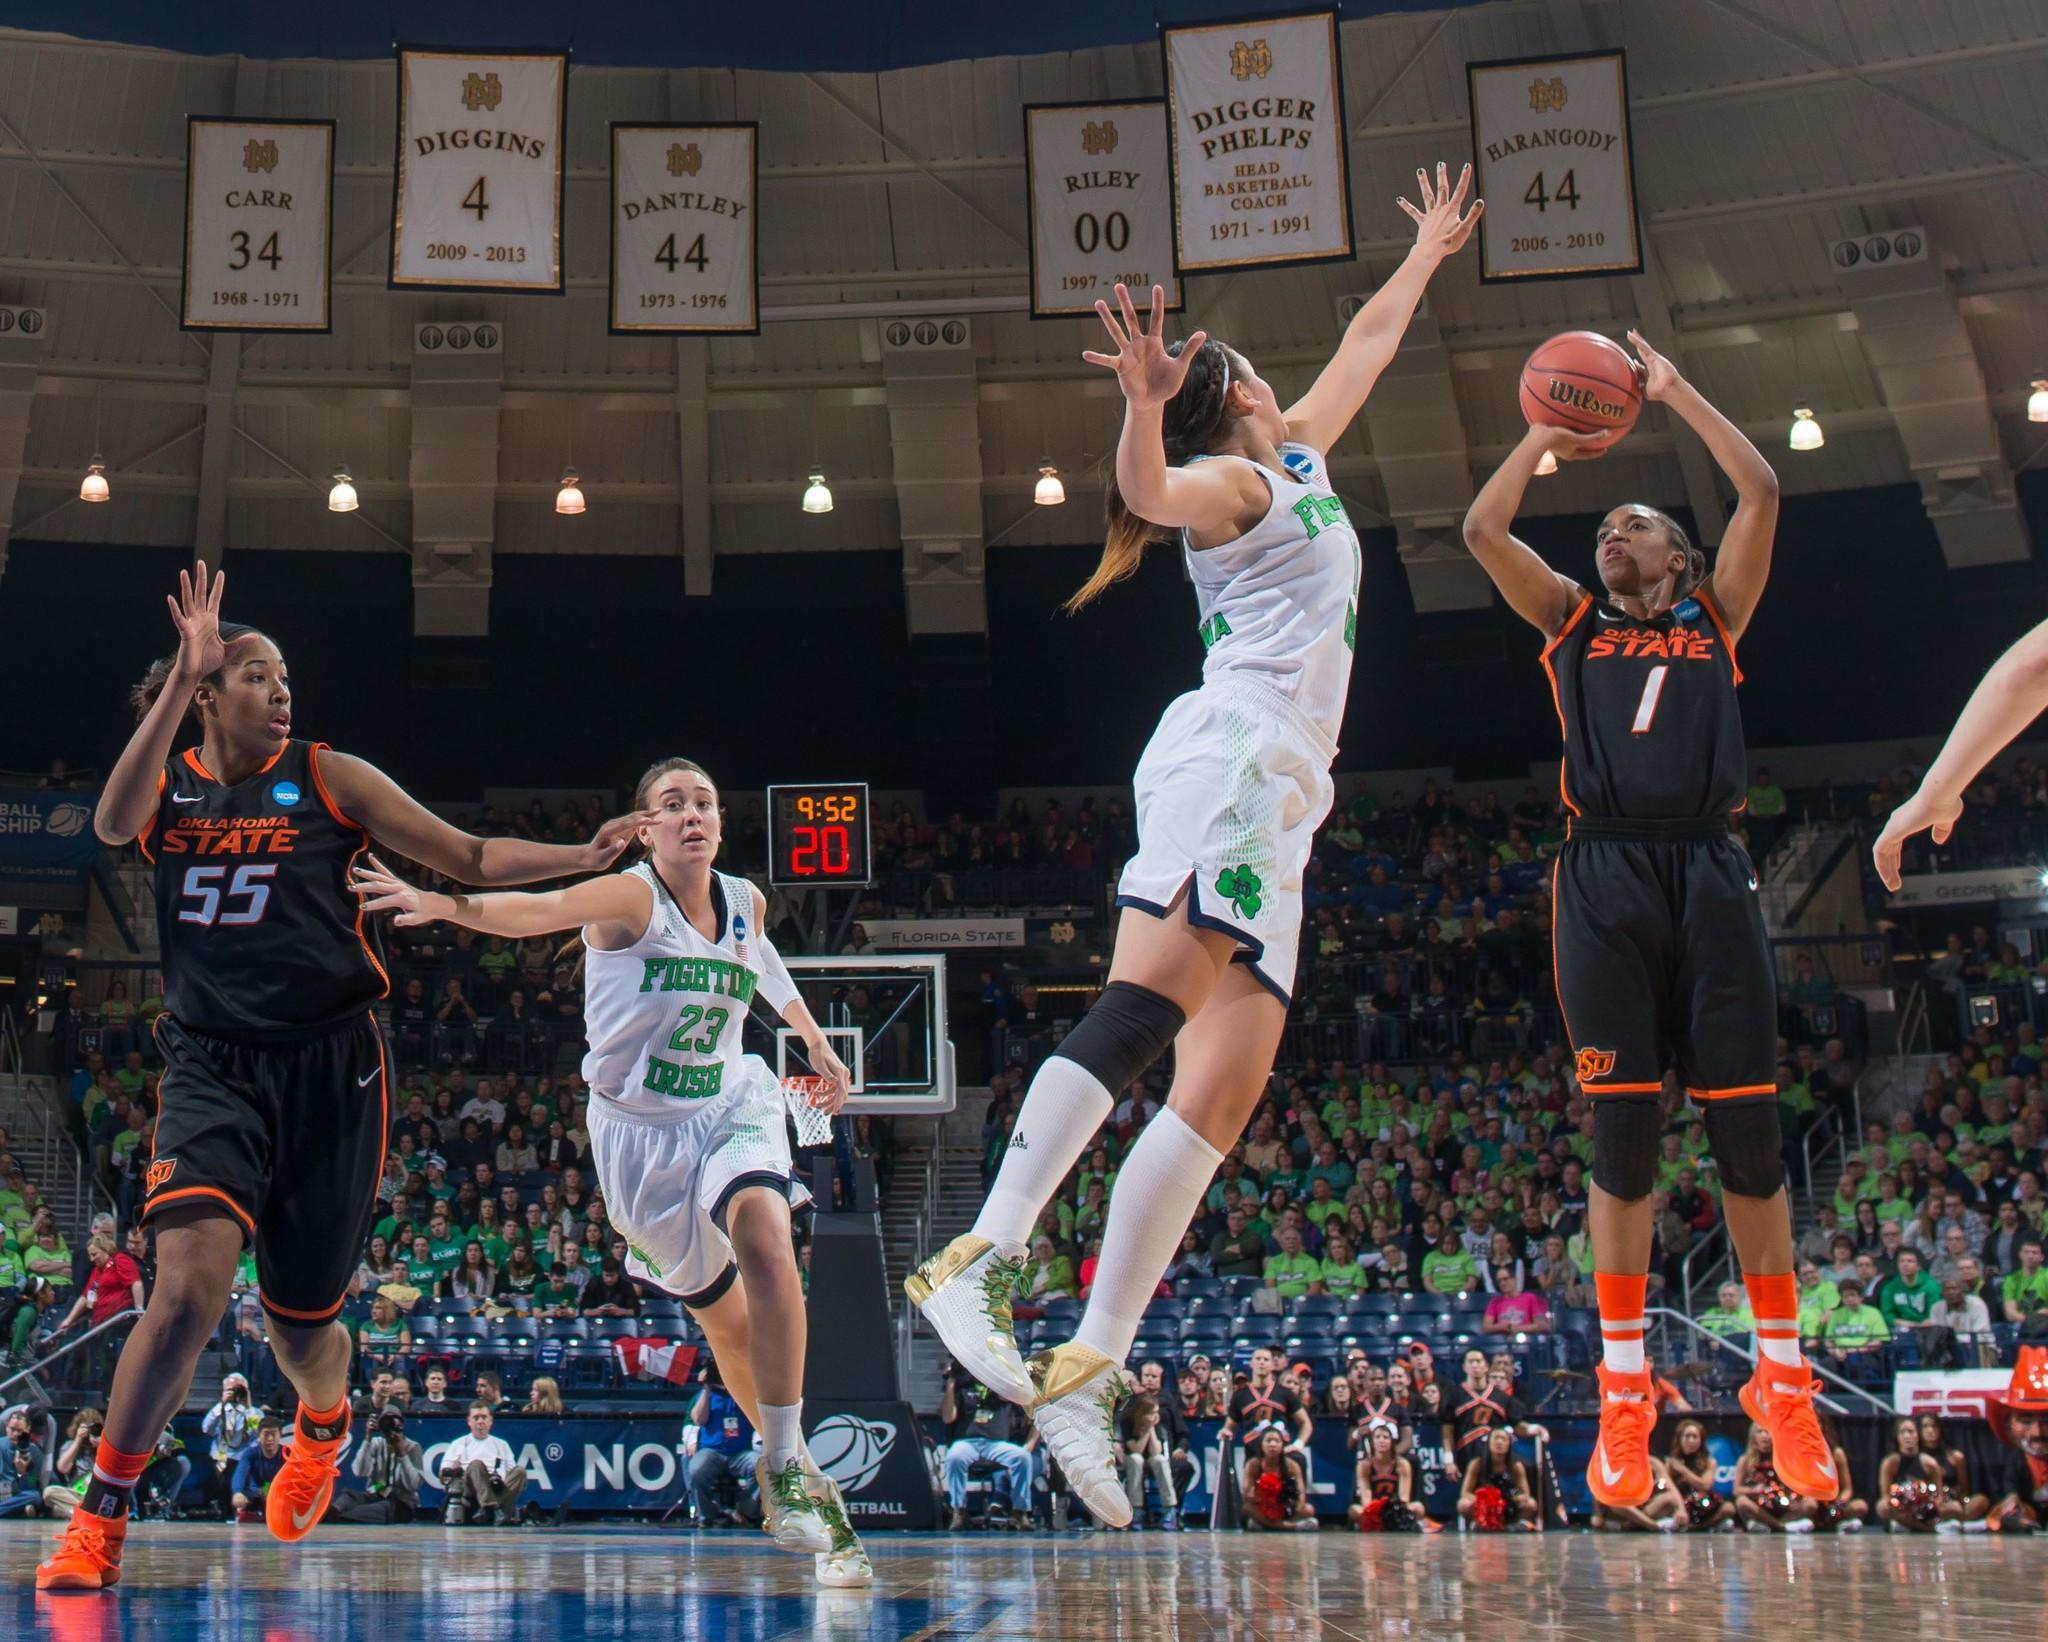 Oklahoma State Cowgirls guard Brittany Atkins (1) shoots as Notre Dame Fighting Irish forward Natalie Achonwa (11) defends in the first half in the semifinals of a women's college basketball game in the Notre Dame regional of the 2014 NCAA Tournament at the Purcell Pavilion.